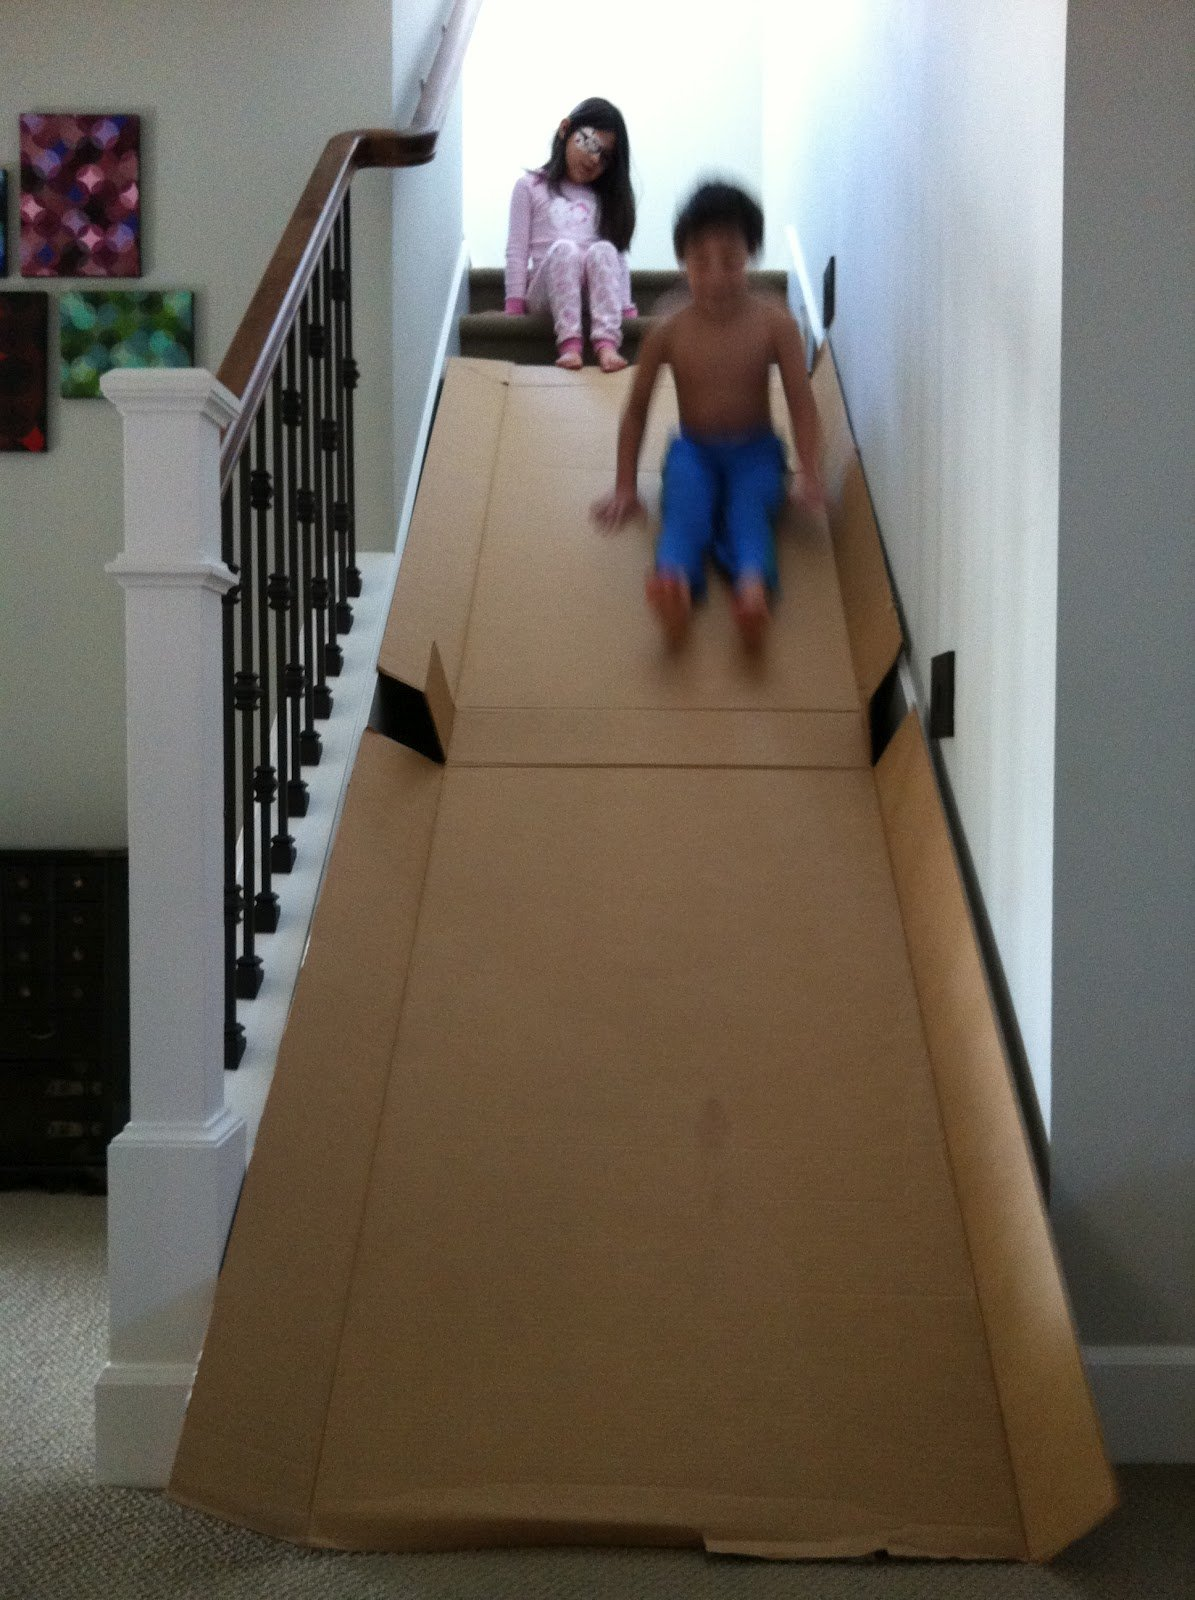 20 Clever Diy Projects Using Old Cardboard Boxes Make